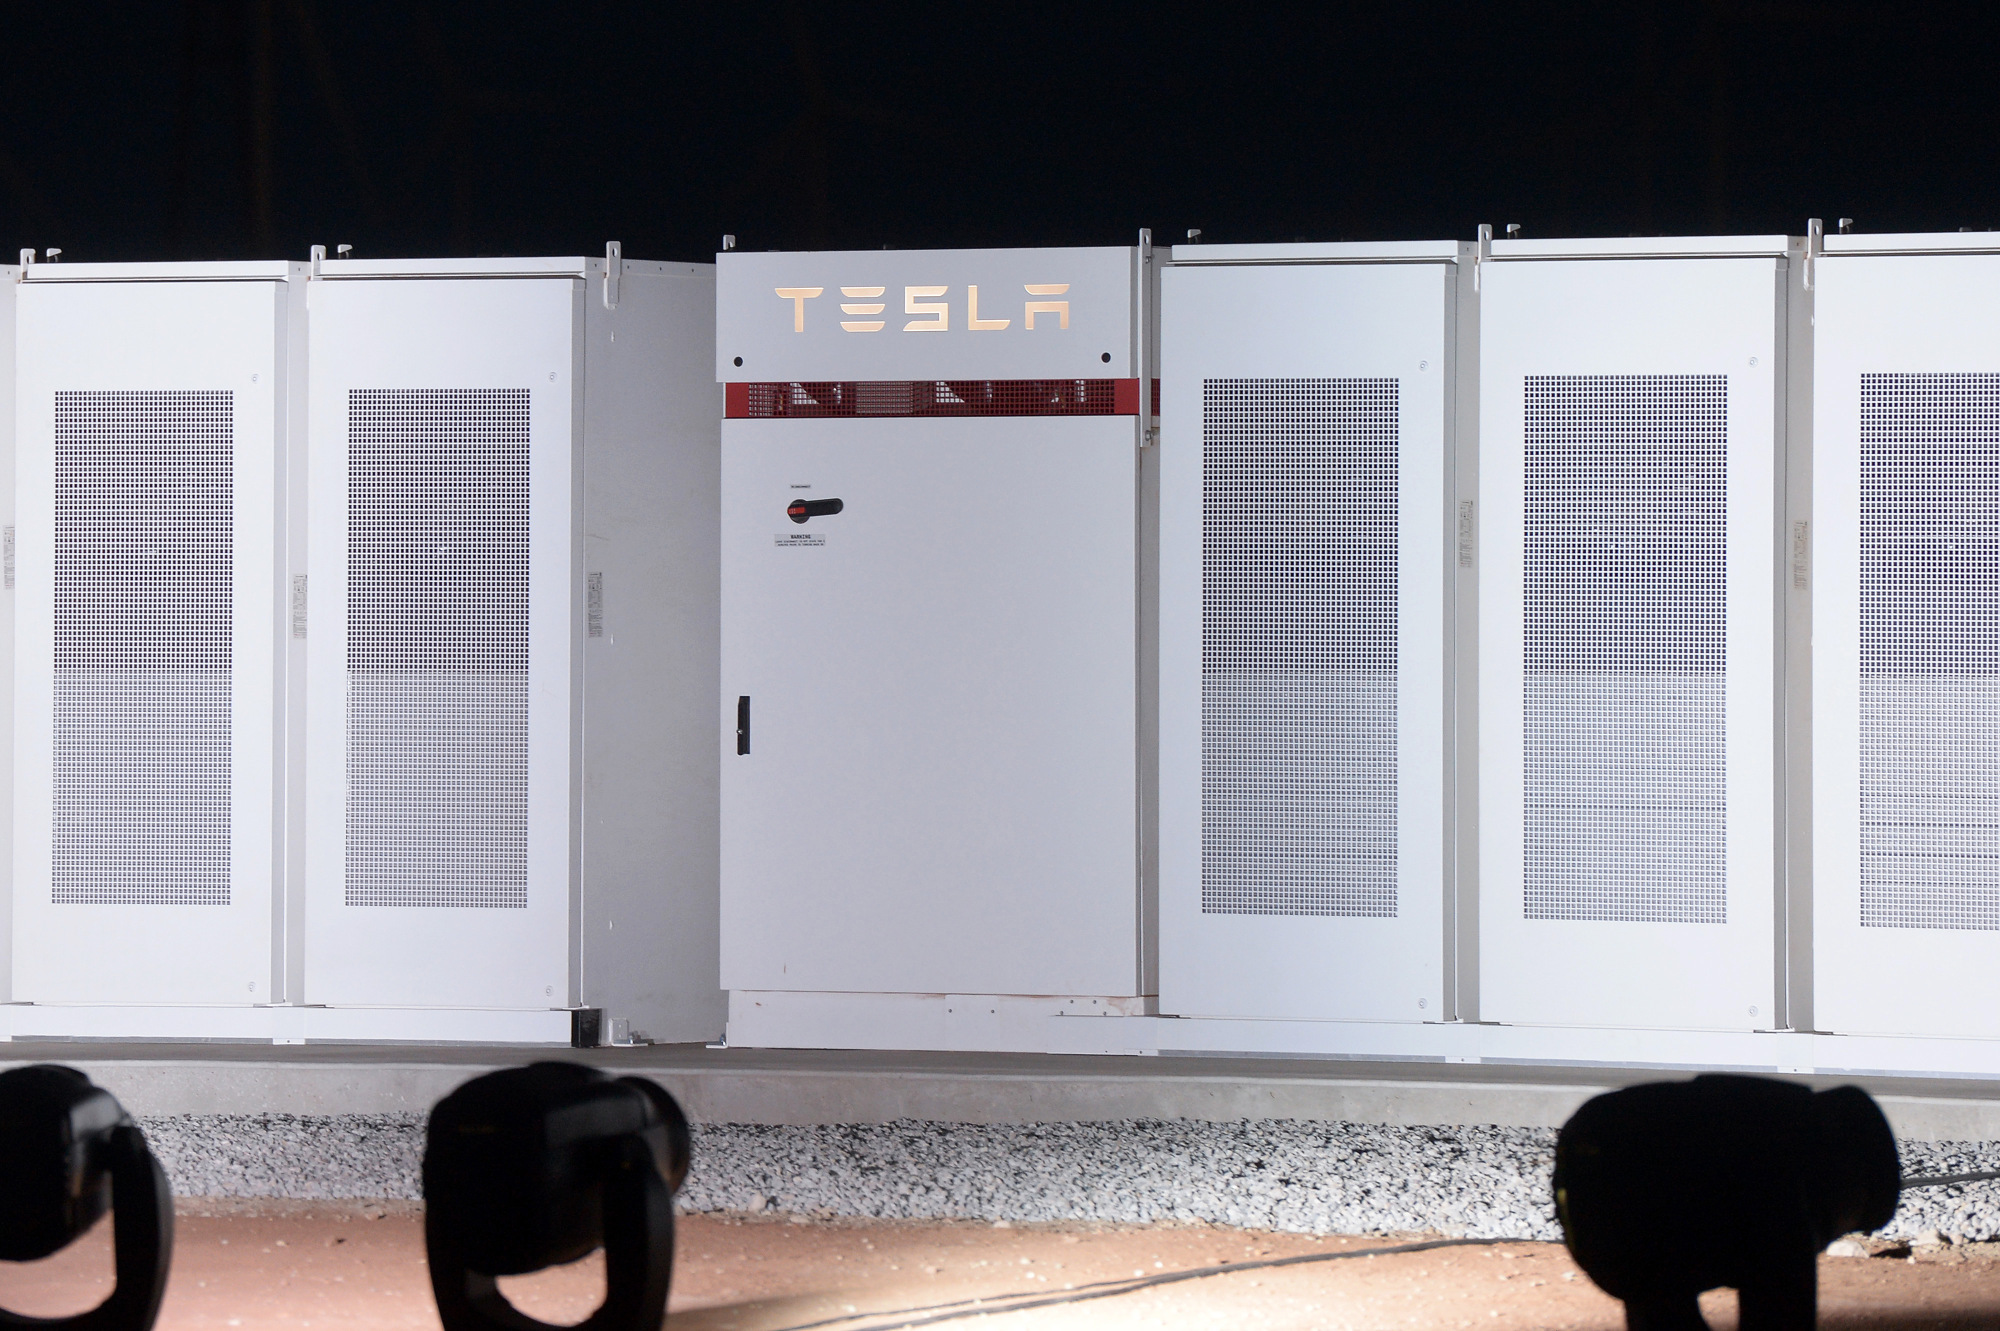 Tesla Powerpacks that will be used to form the world's largest lithium-ion battery in South Australia. Photographer: Carla Gottgens/Bloomberg